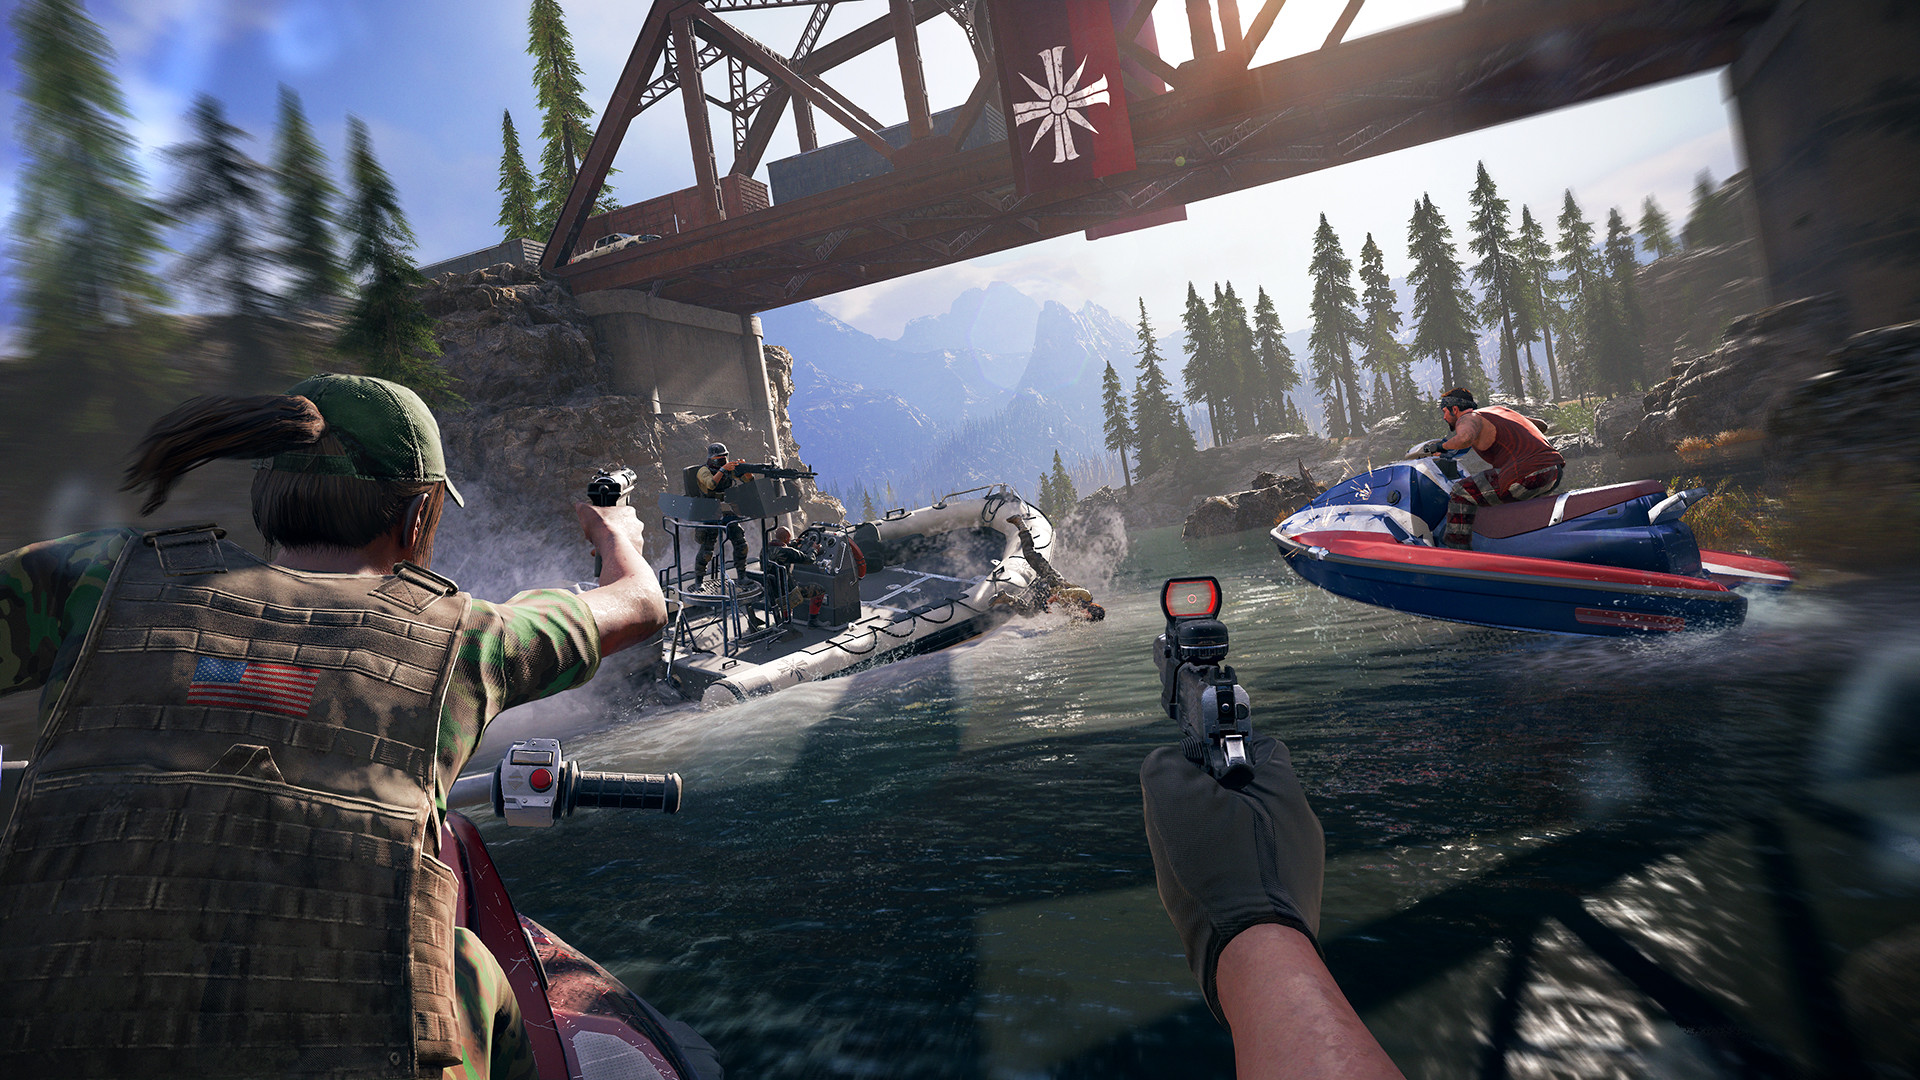 Скриншот *Far Cry 5 Deluxe Edition [PS4] 5.05 / 6.72 / 7.02 [EUR] (2018) [Русский] (v1.12)*